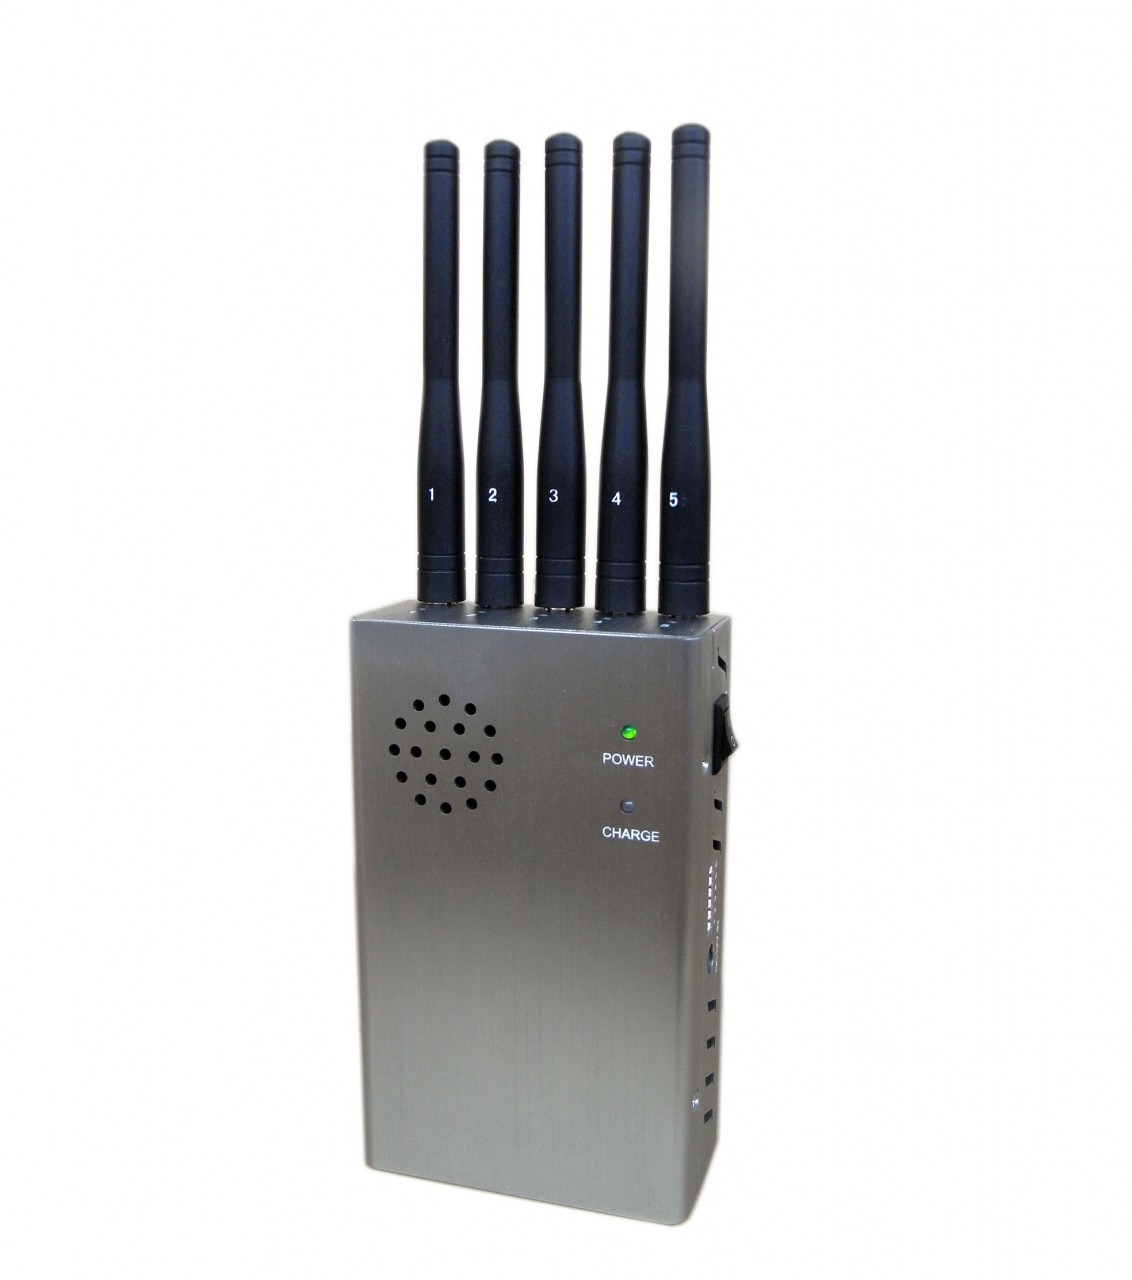 3g 4g wifi mobile phone signal jammer , how to use cell phone signal jammer